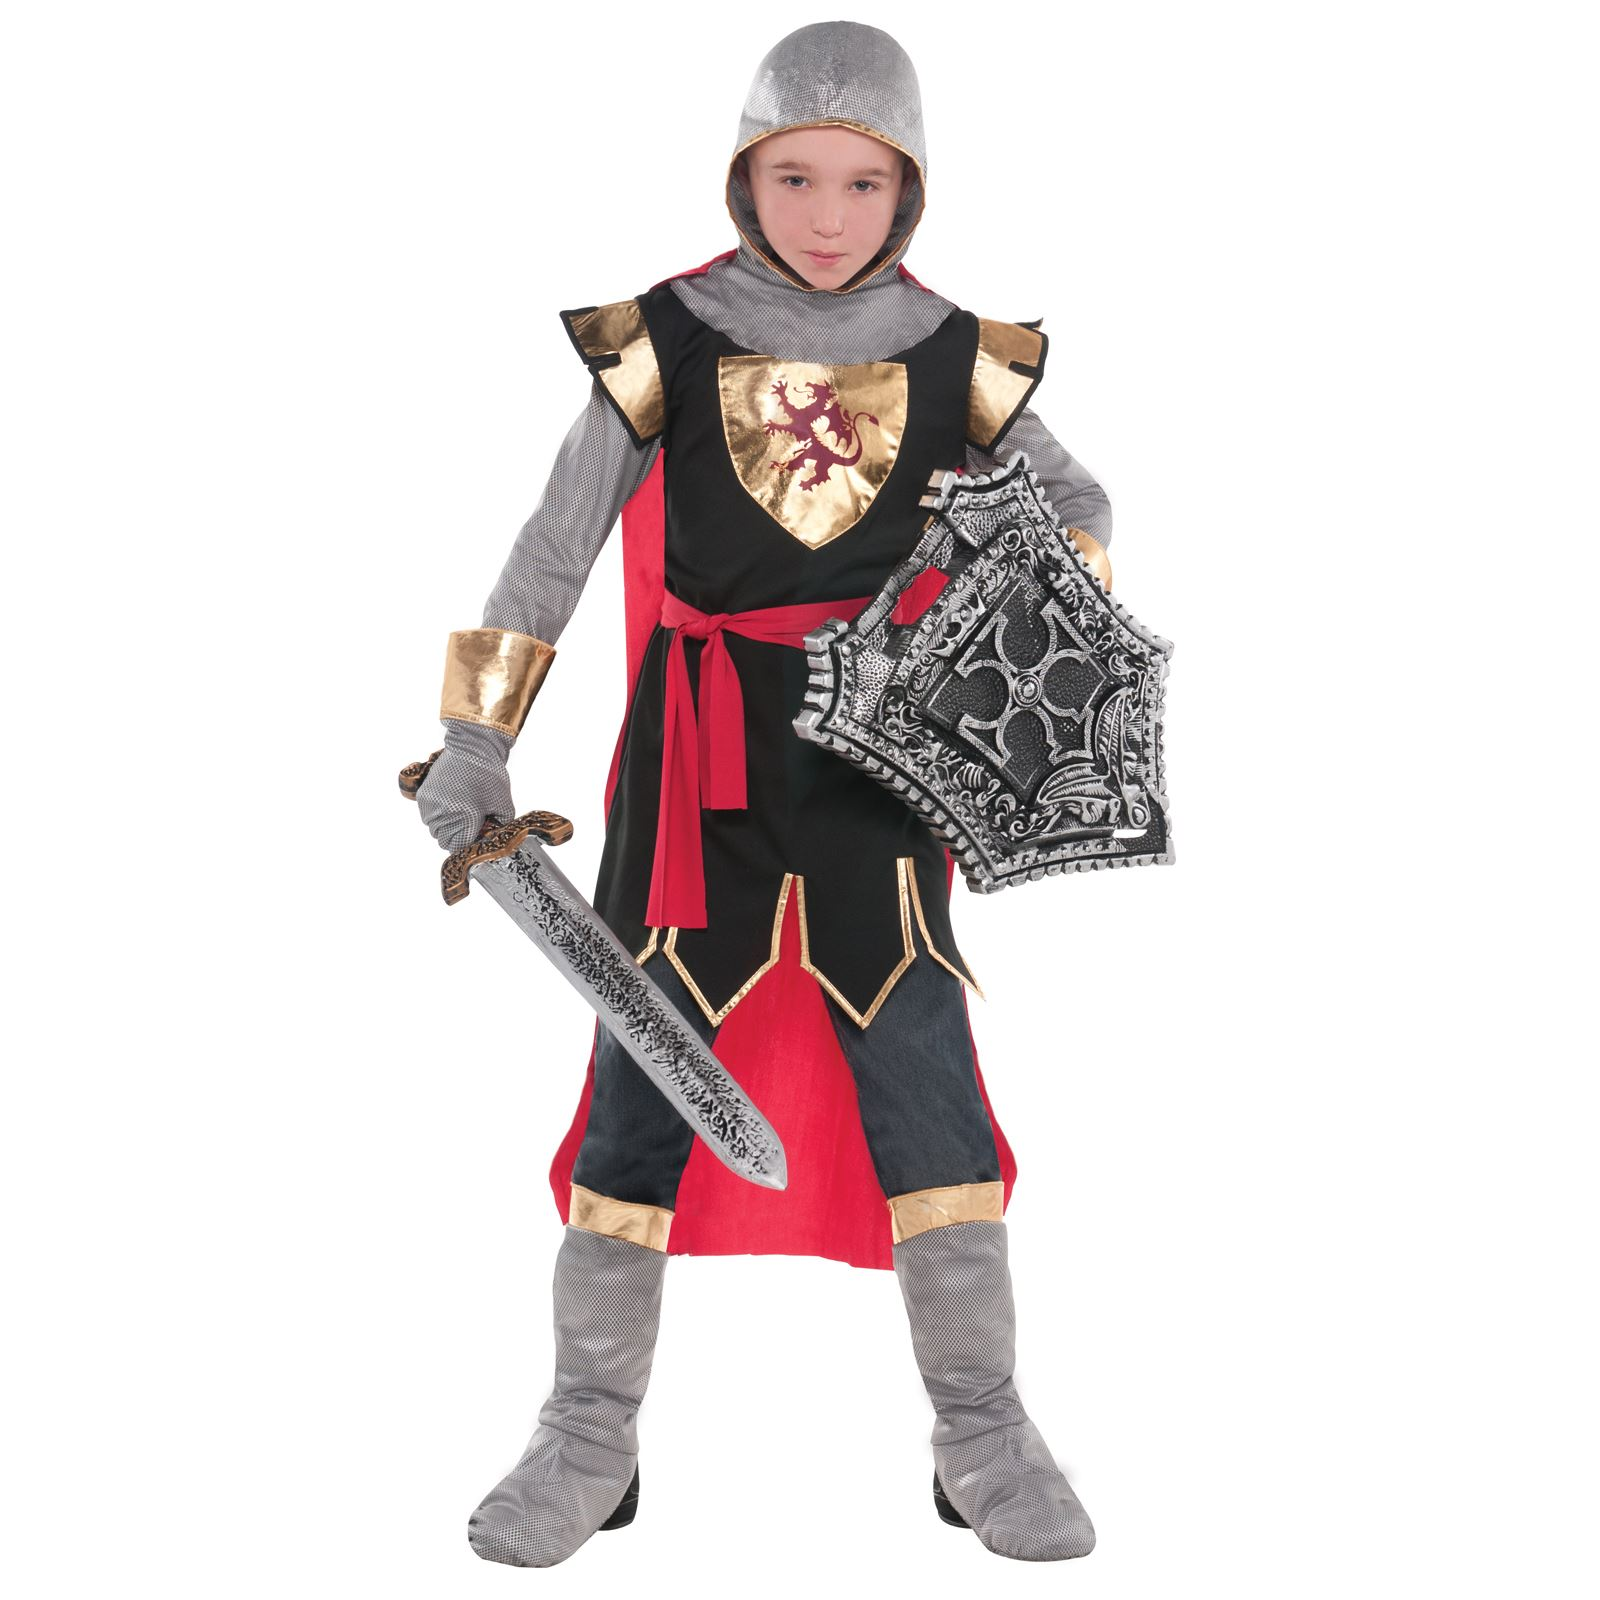 Find great deals on eBay for Knight Armor Costume in Men's Theater and Reenactment Costumes. Shop with confidence. Find great deals on eBay for Knight Armor Costume in Men's Theater and Reenactment Costumes. Armor Medieval Knight Crusader Chest Wrist Shoulder Dress Up Costume Kids. $ Buy It Now. or Best Offer. Roman Breastplate Roman.